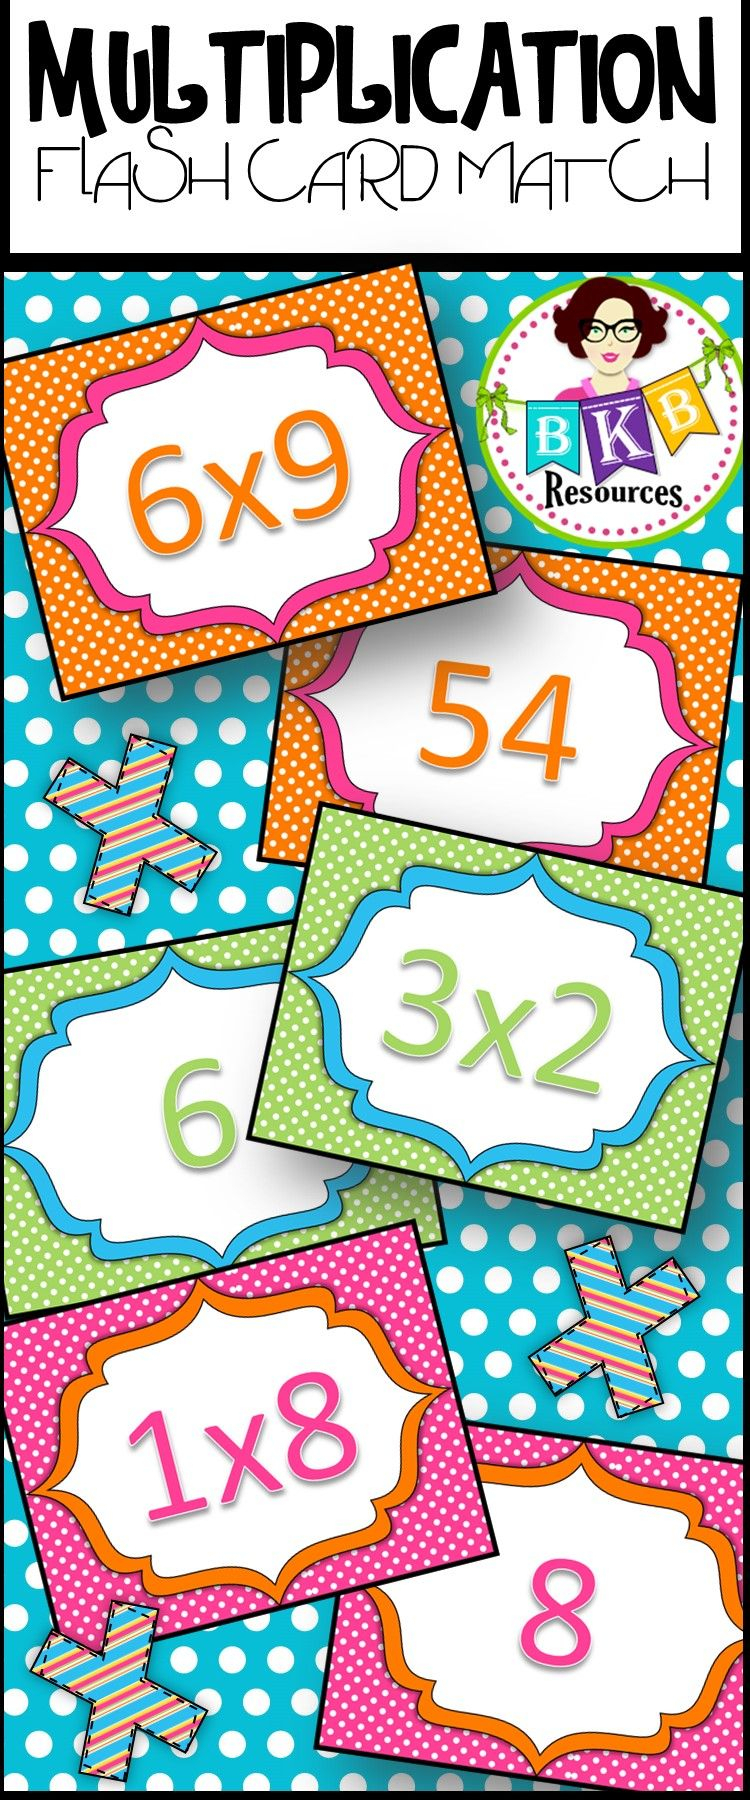 Multiplication Flash Card Match | Multiplication, Learning within Printable Multiplication Flash Cards 0-12